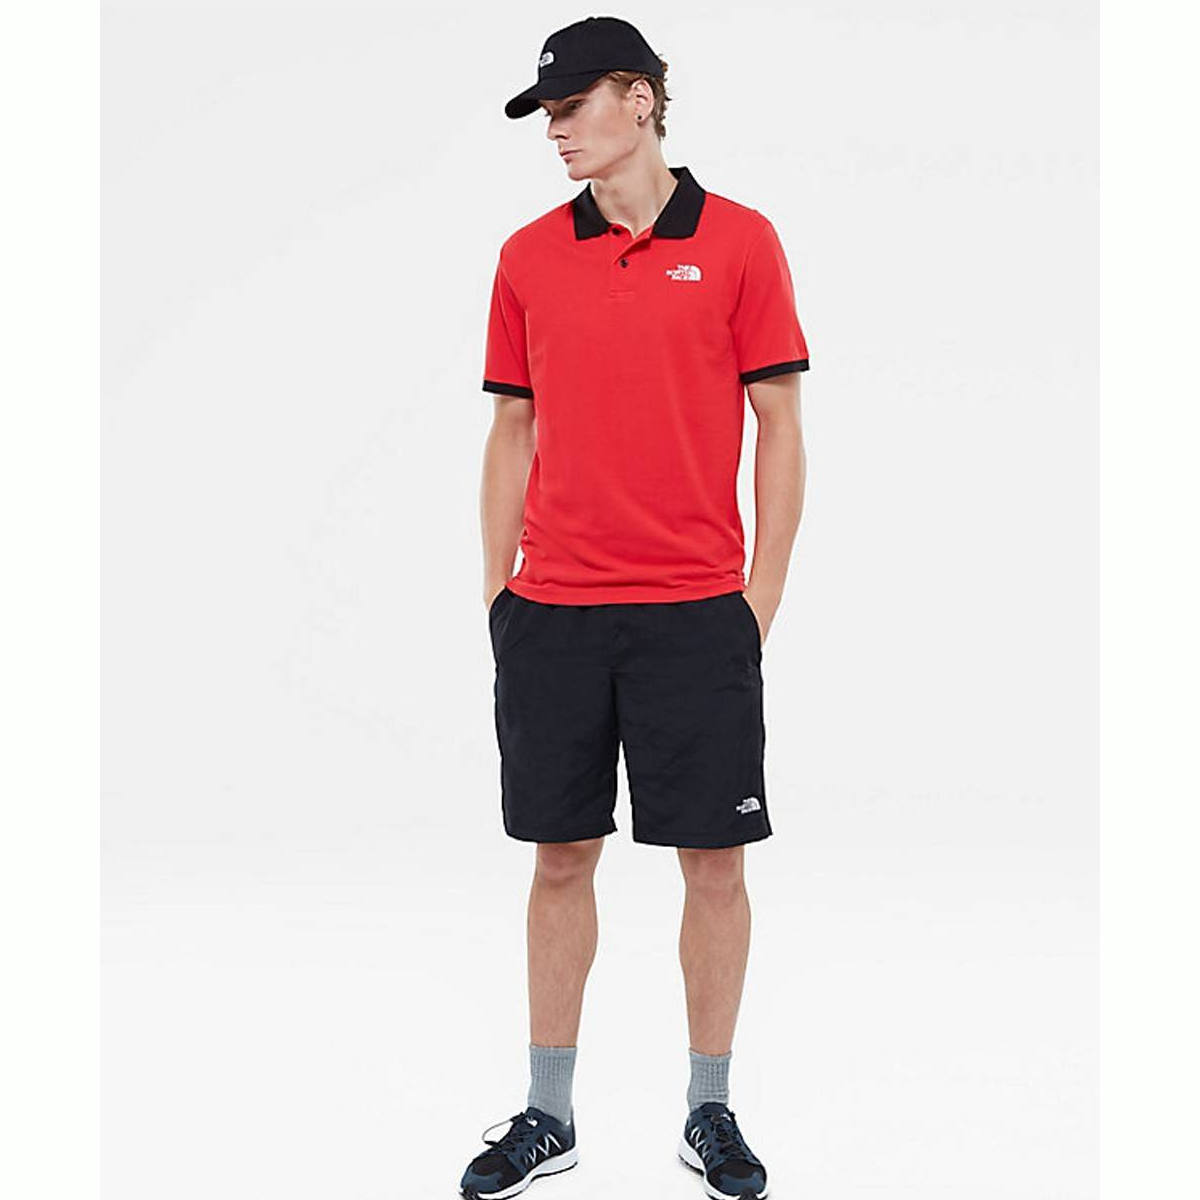 The North Face|Classic V Rapids Water Short